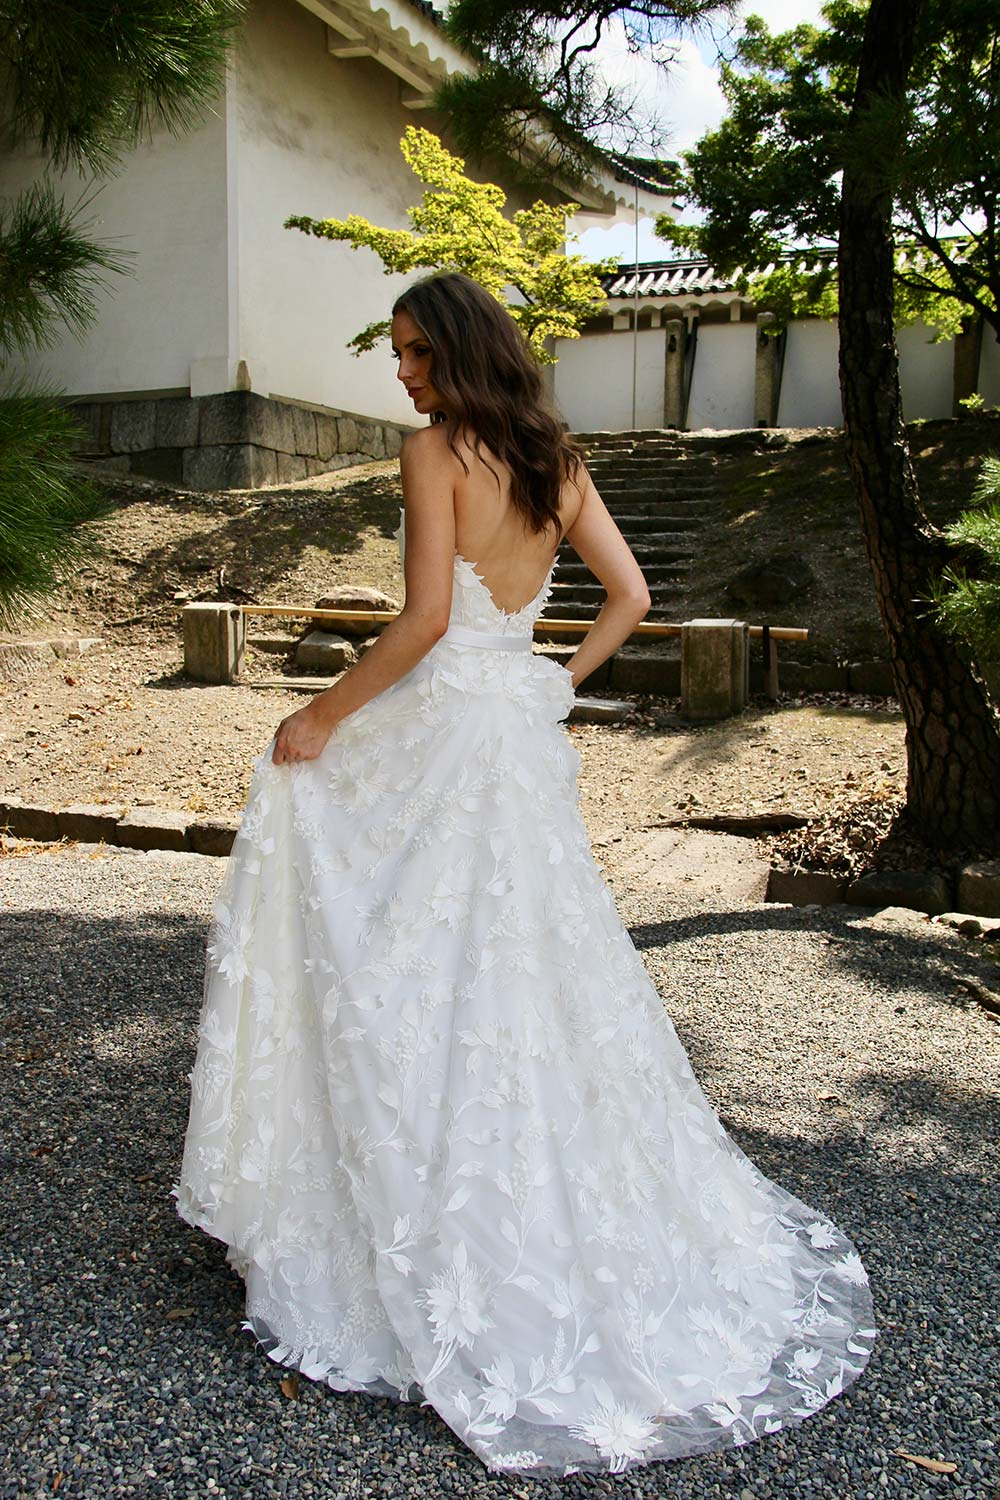 Female model wearing Vinka Design An Oriental Affair Wedding Dress. In sunlit garden the back detail of a boned fitted strapless bodice and leaf lace on a tulle base